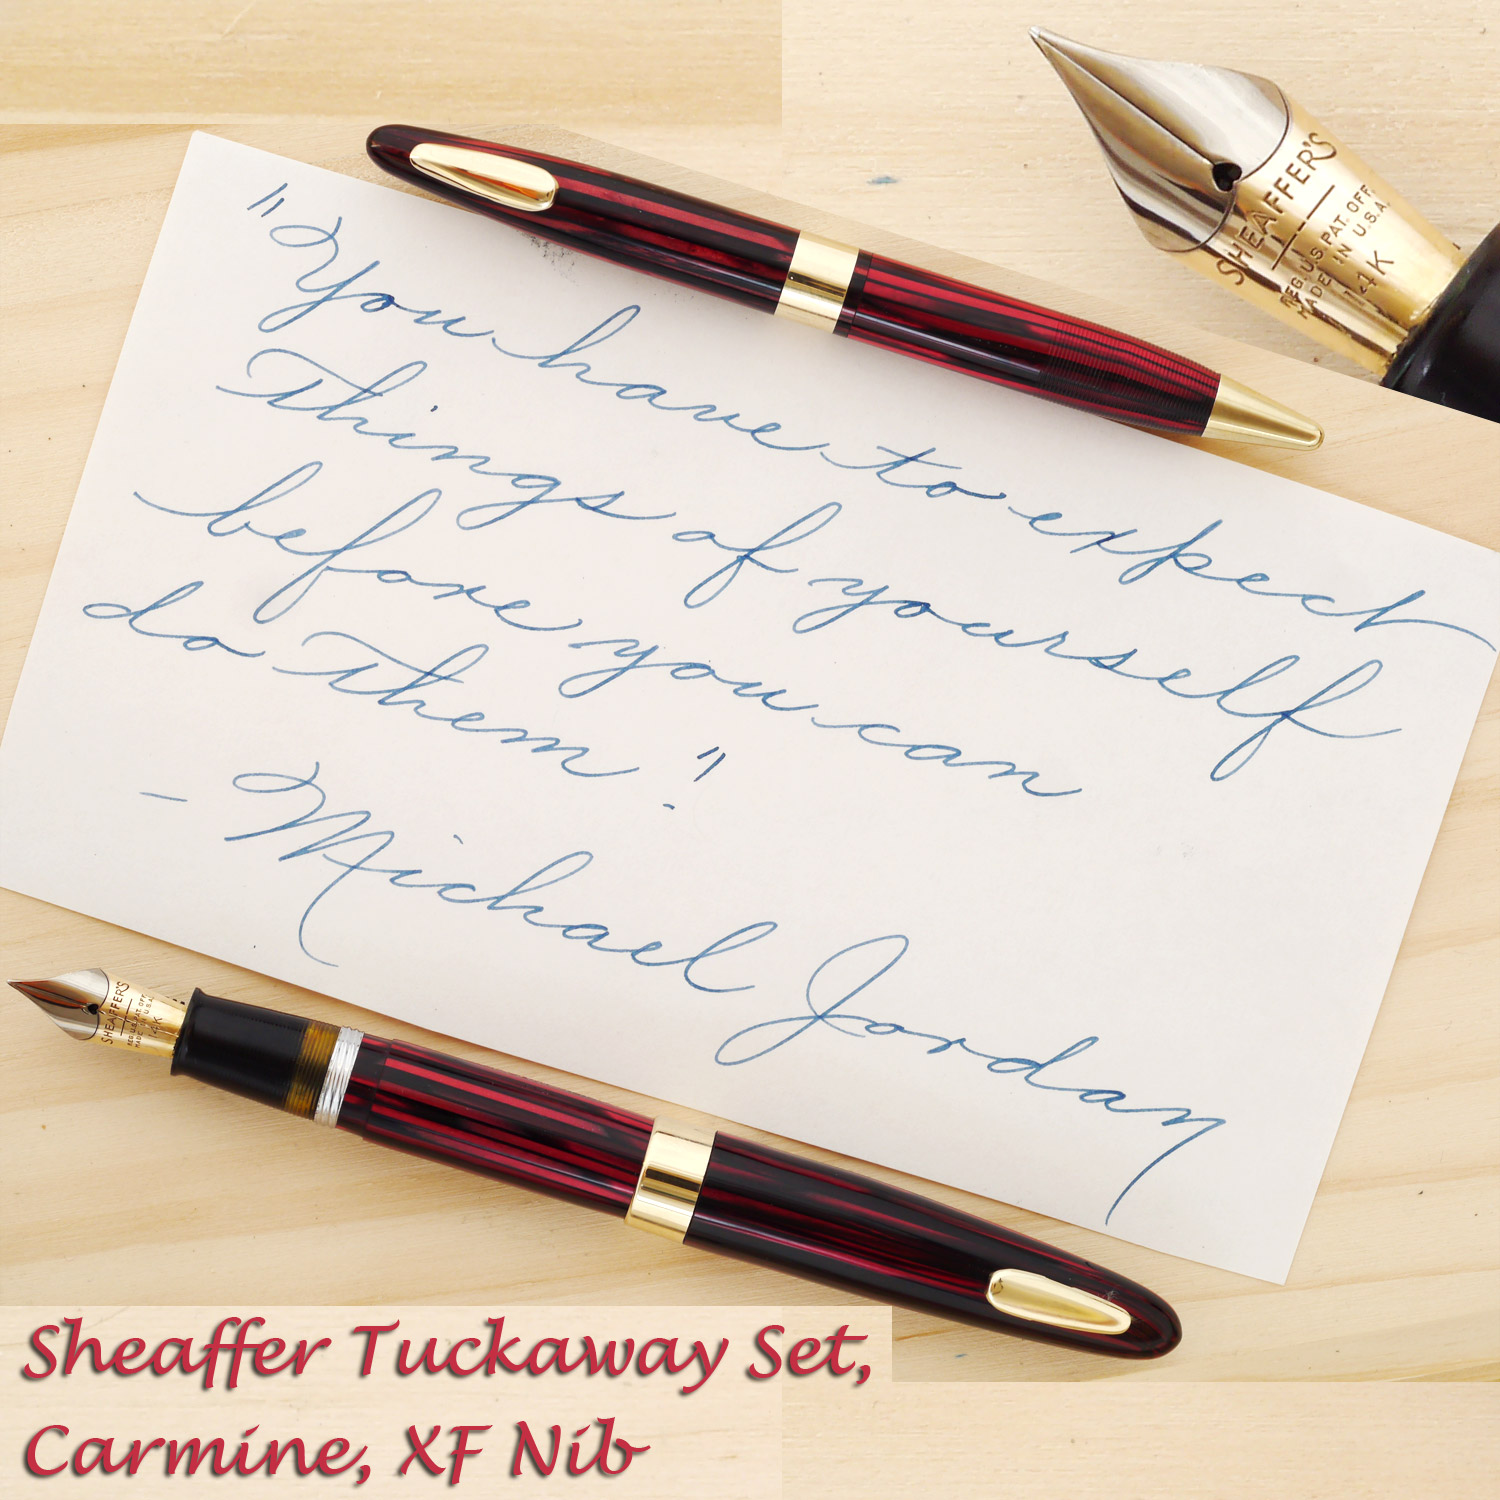 Sheaffer Tuckaway Vac Set in Carmine, with an XF Nib